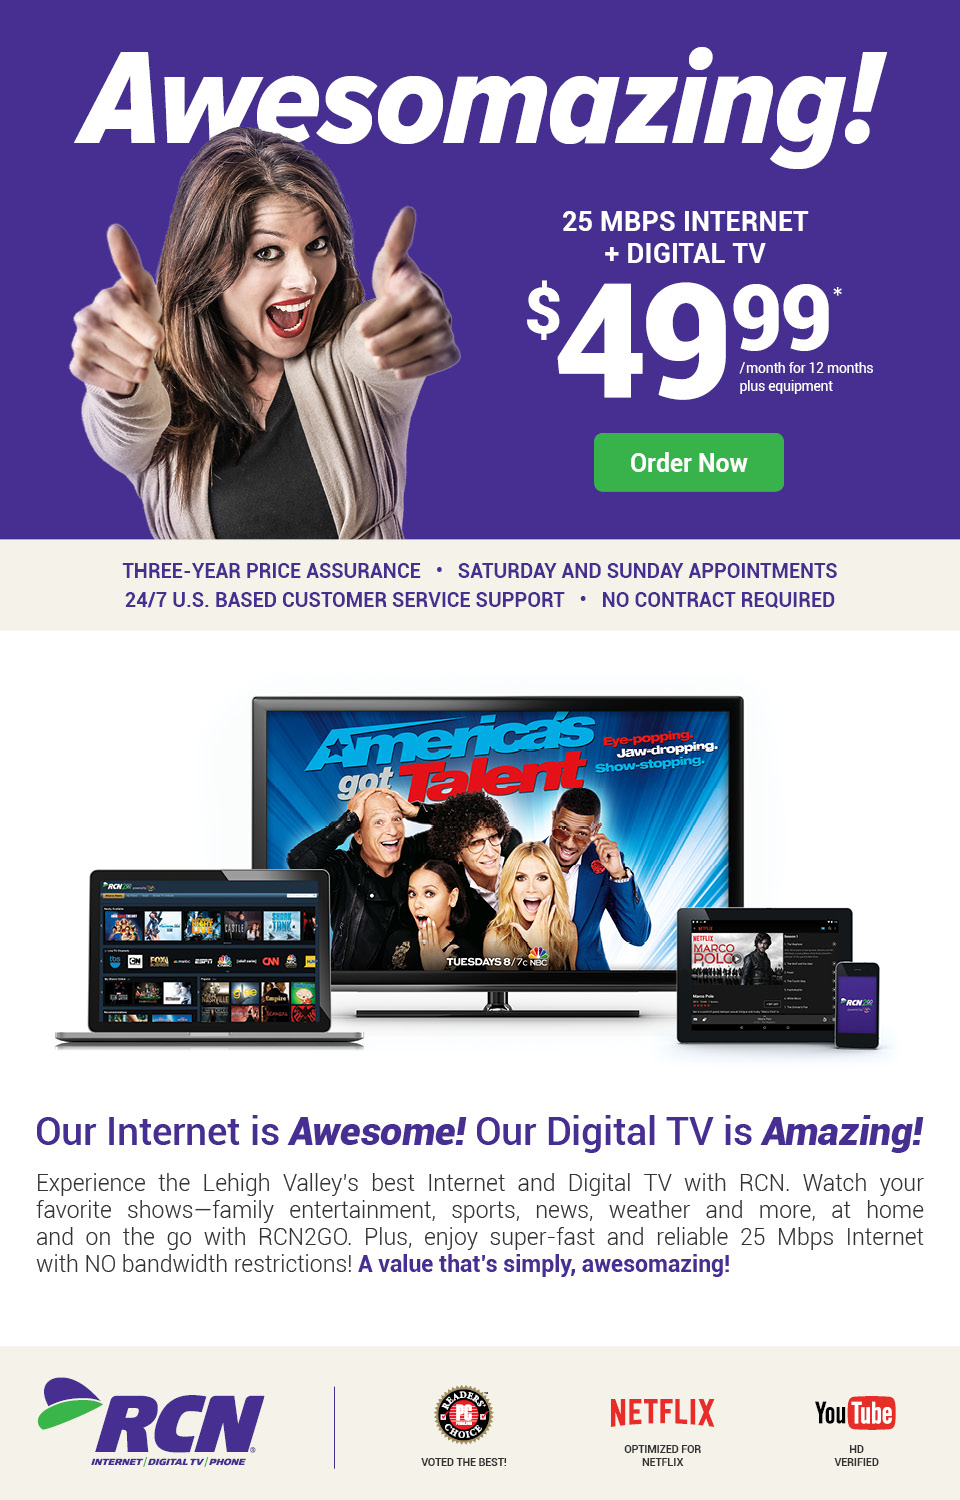 $49.99 25 Mbps Internet and Digital TV